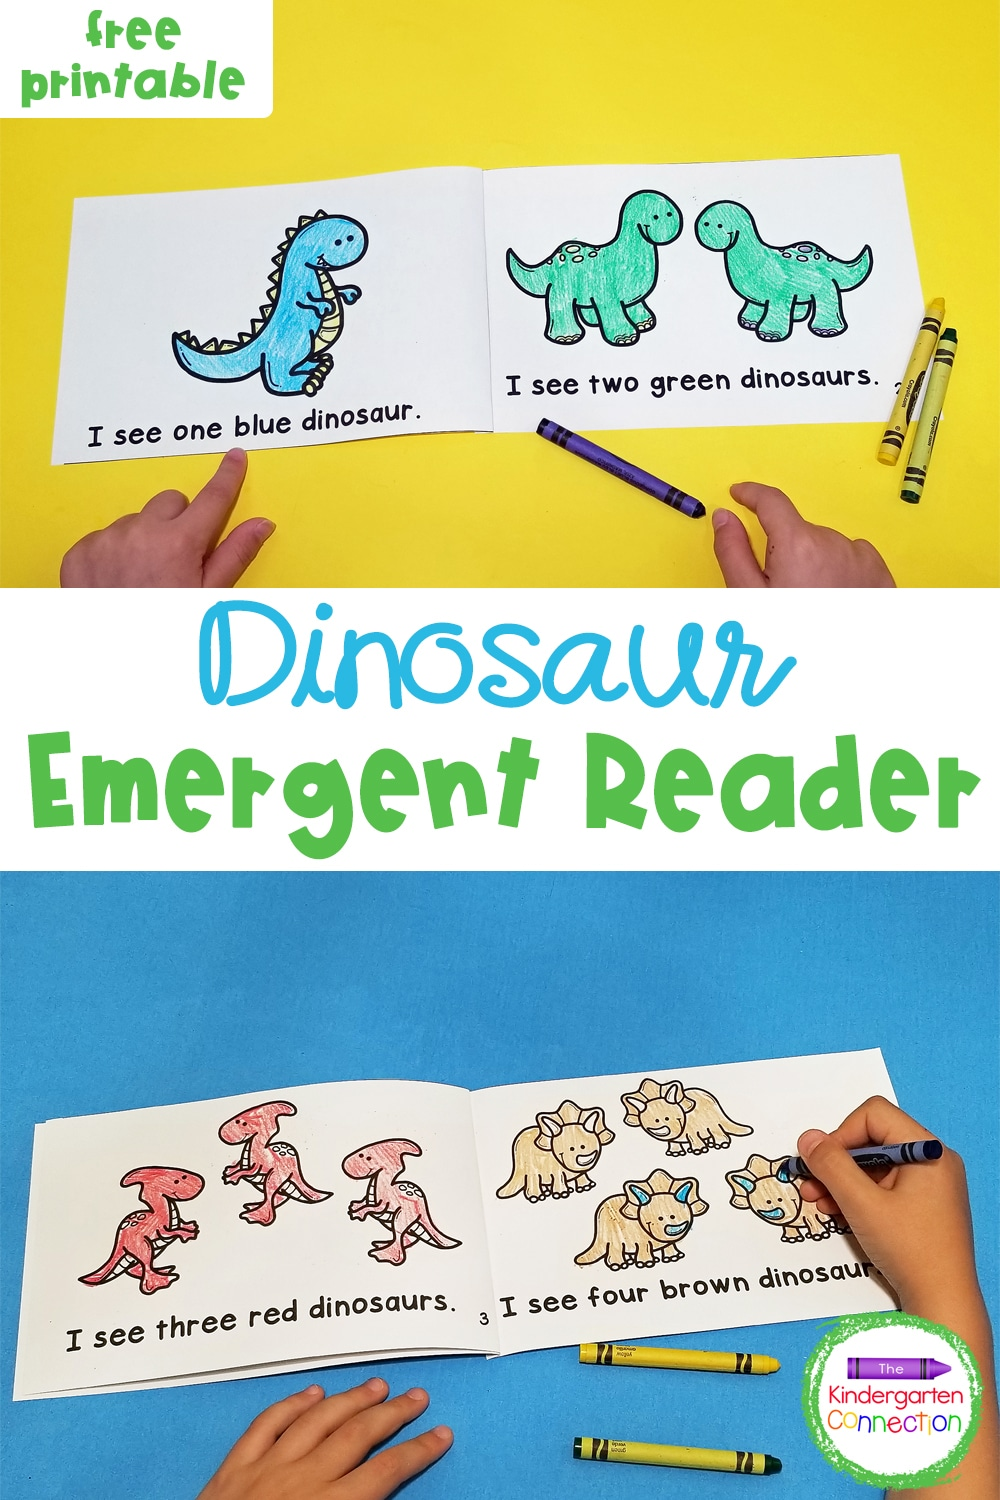 This free Dinosaur Emergent Reader for Pre-K & Kindergarten is a fun companion to your favorite dinosaur books and activities!